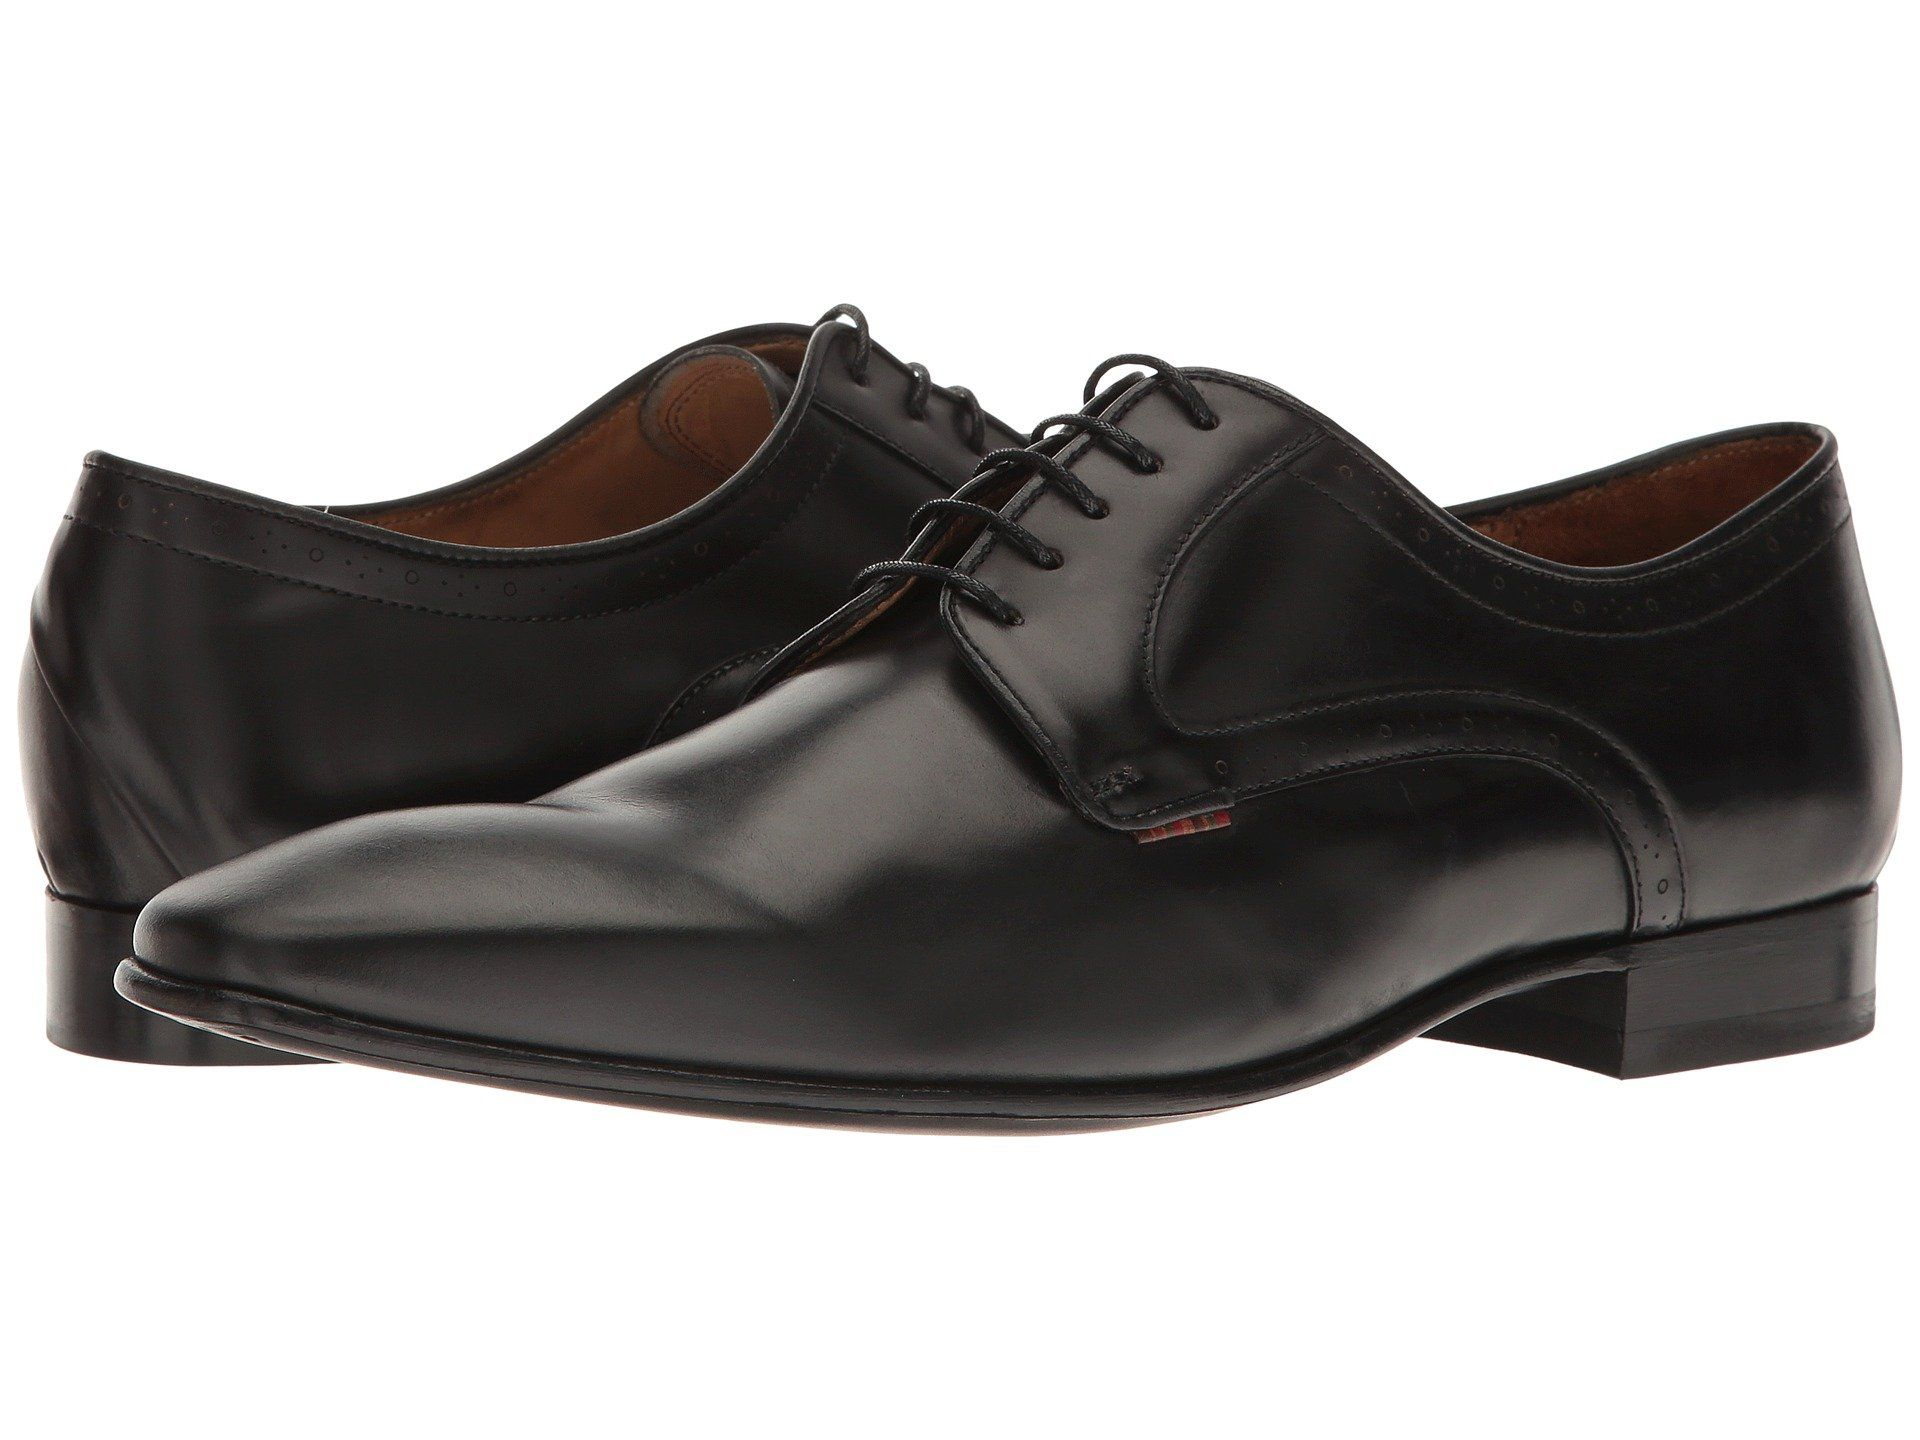 New Paul Smith Ps Roth Oxford For Men Outlet